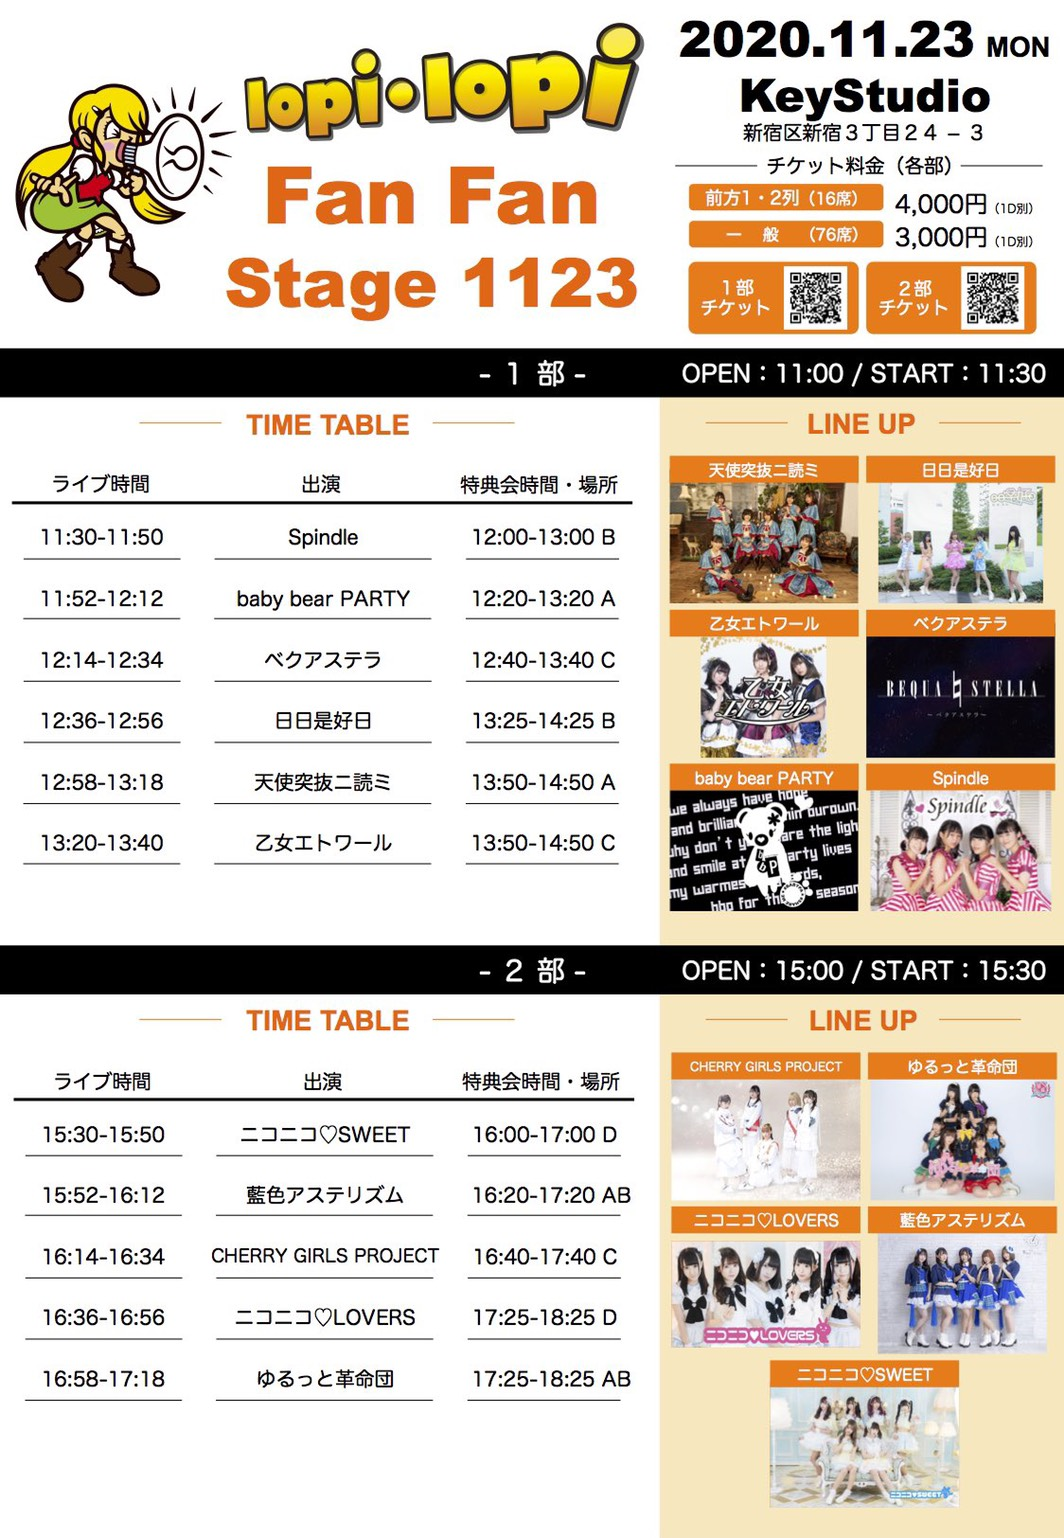 lopi lopi Fun Fun stage 1123 1部